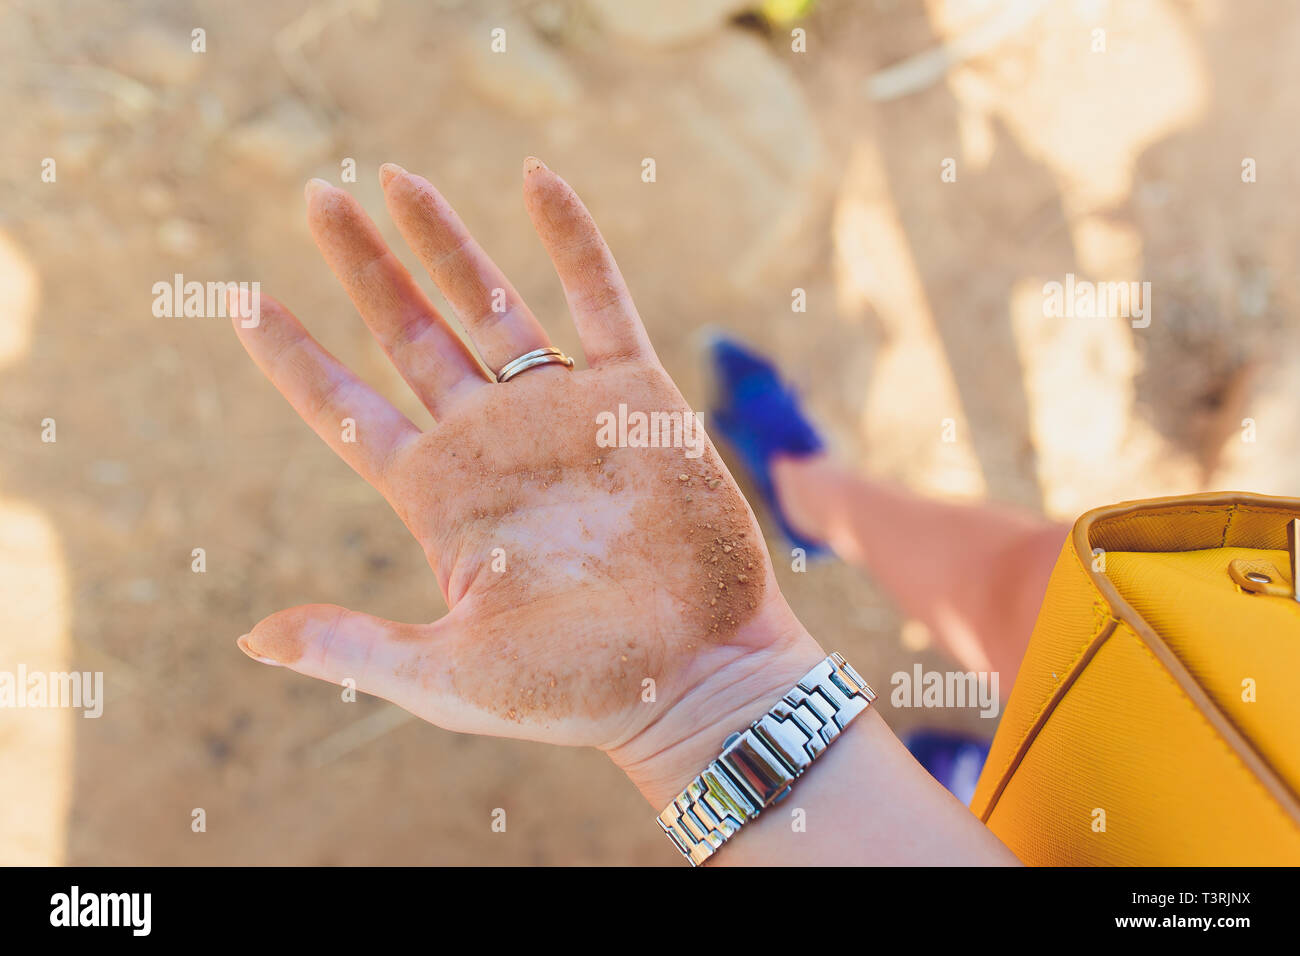 wipes dirty baby hands with a wet napkin. The concept of cleanliness and hygiene. - Stock Image